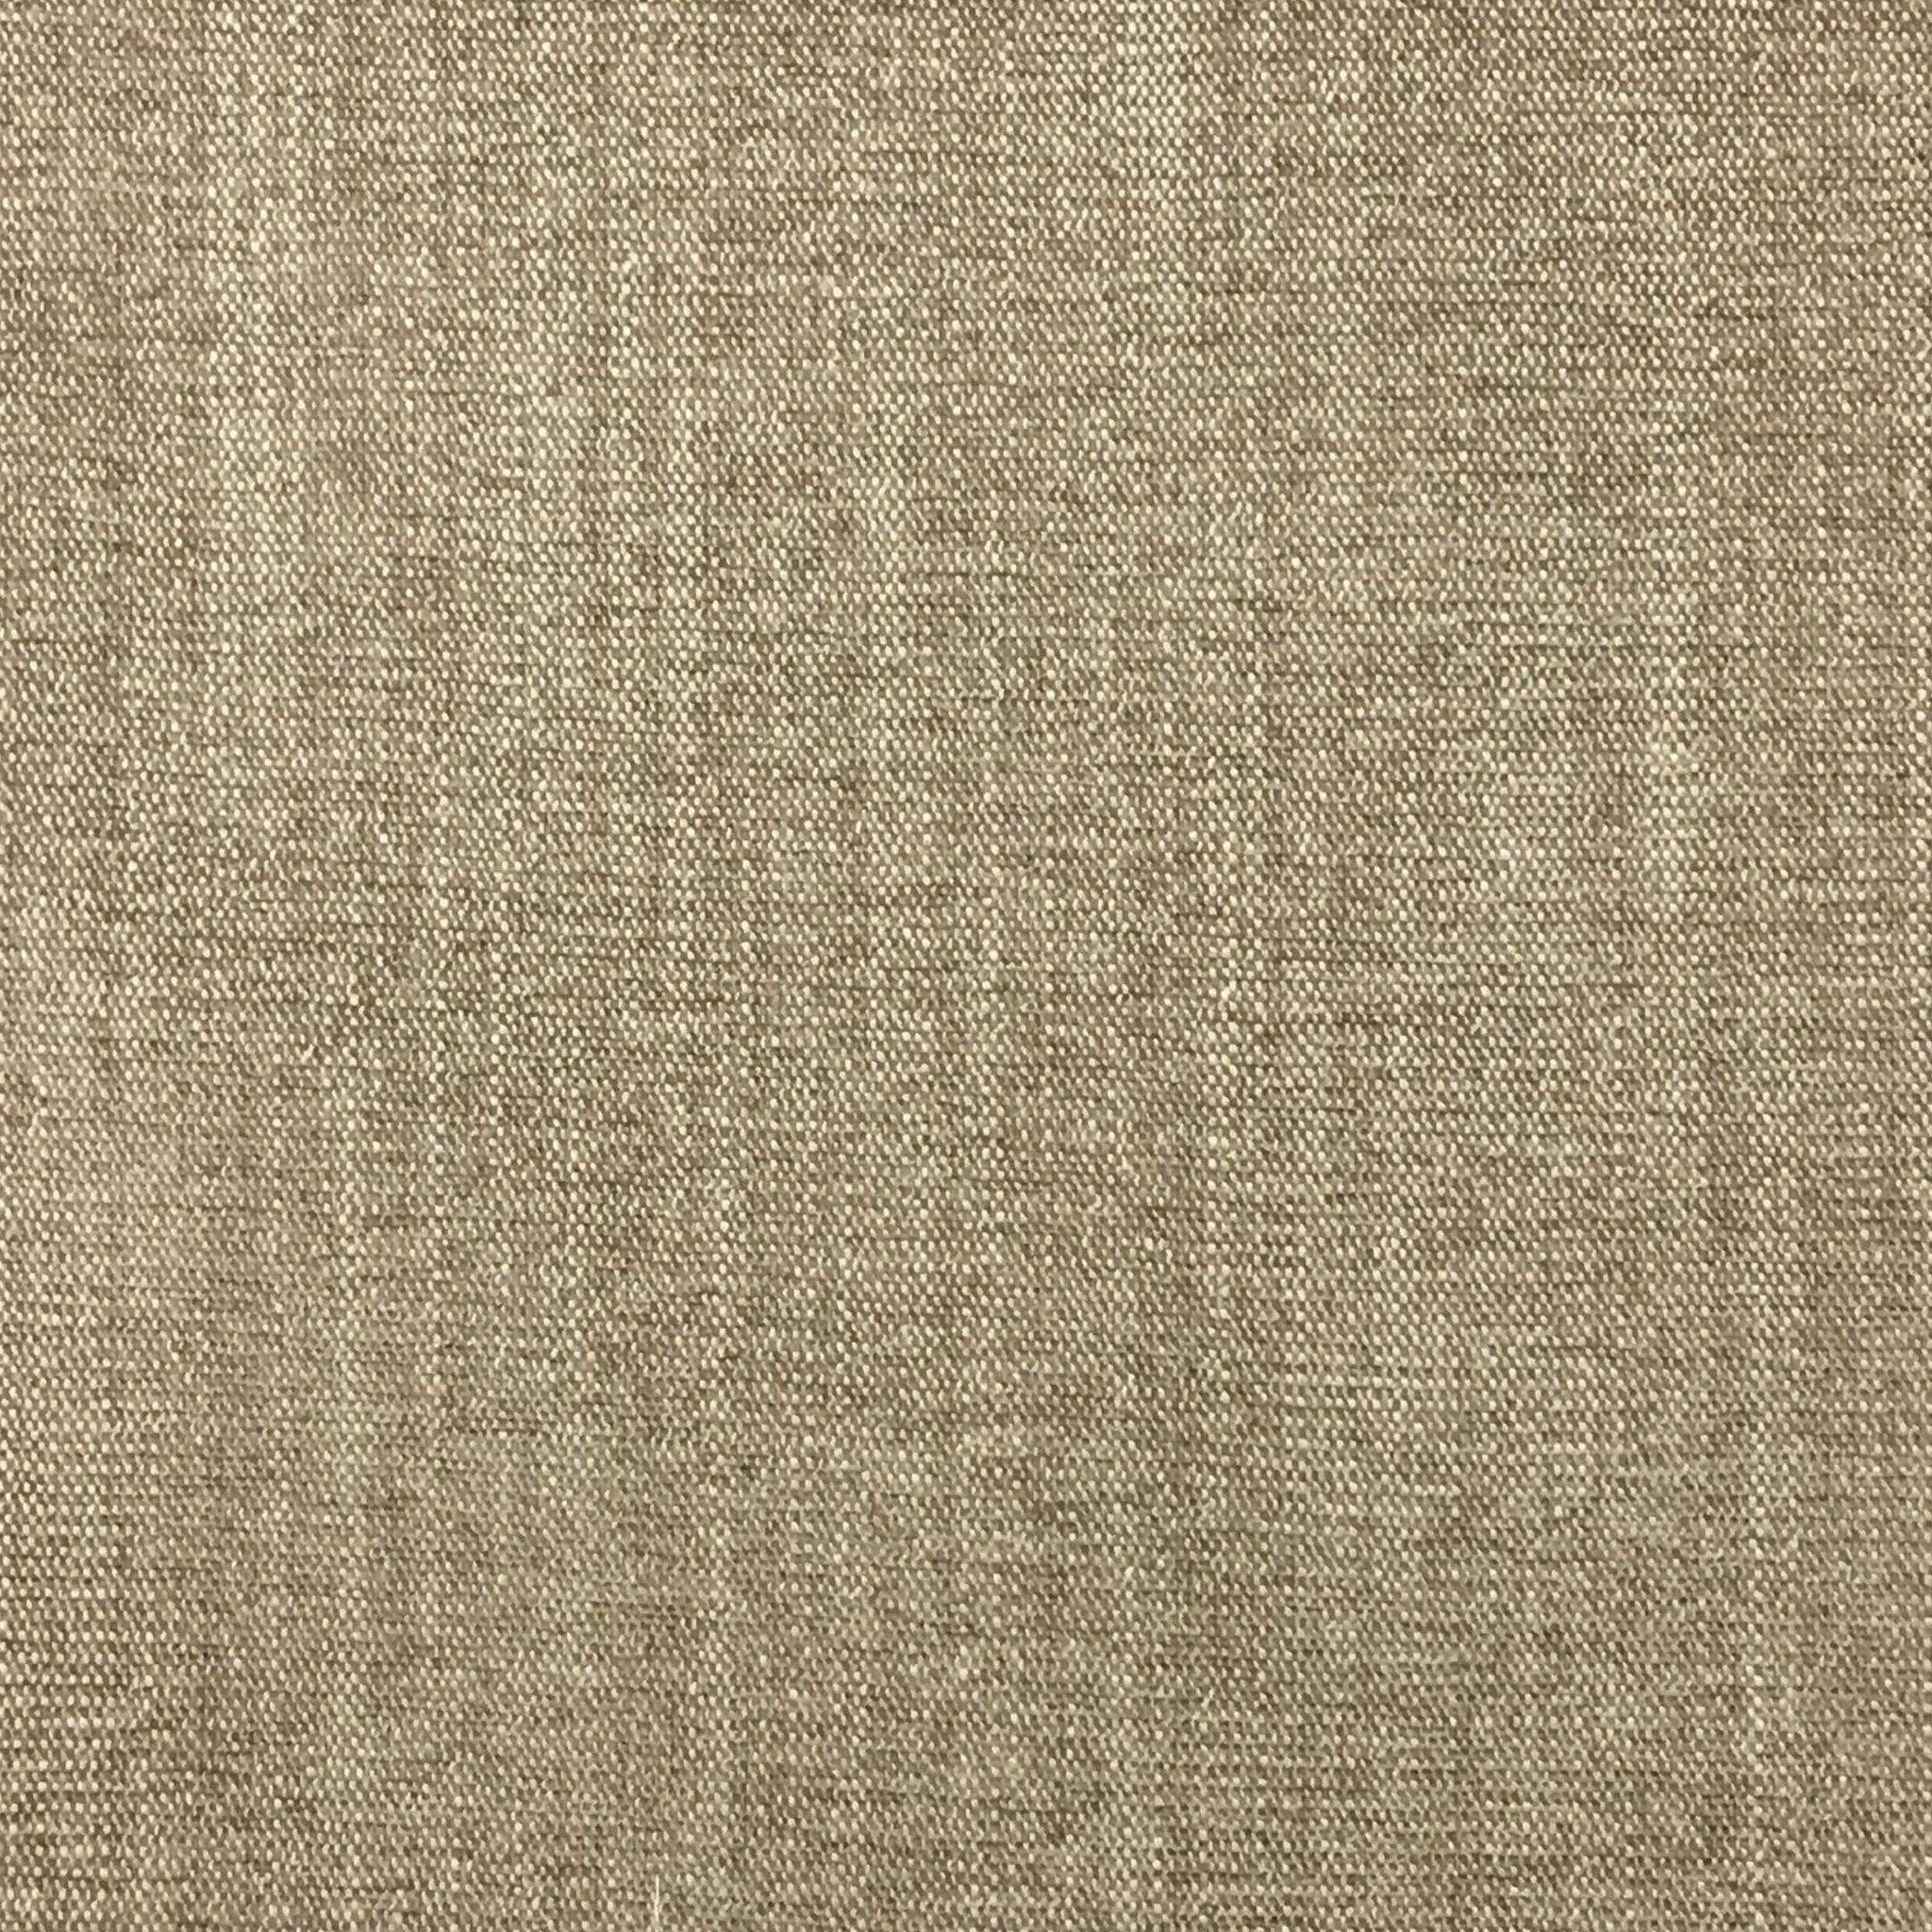 ... Bronson - Linen Polyester Blend Textured Chenille Upholstery Fabric by  the Yard - Available in 25 ...